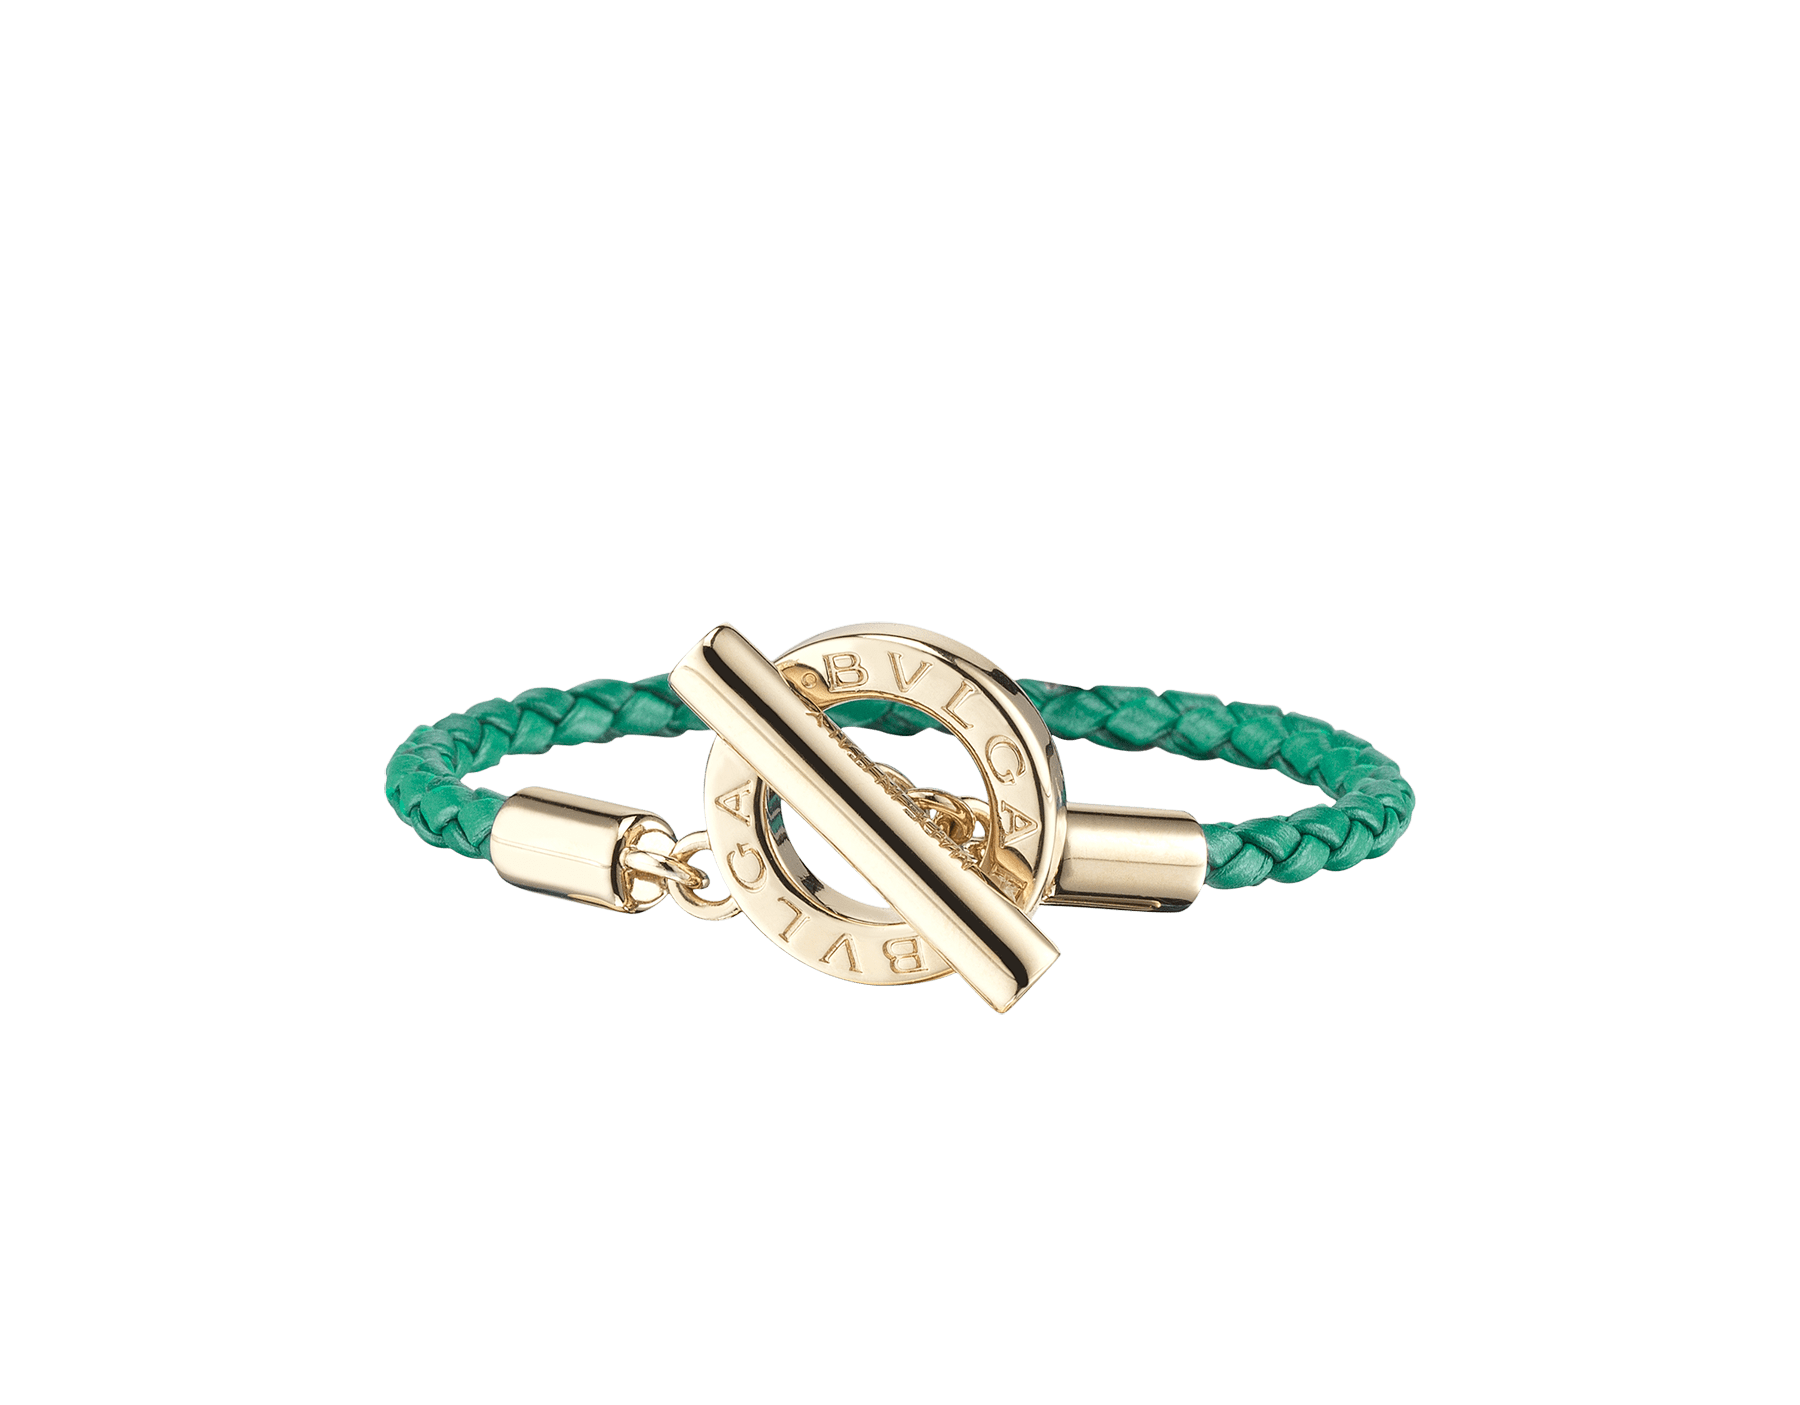 Bvlgari Bvlgari braid bracelet in emerald green woven calf leather with an iconic iconic logo closure in light gold plated brass. BBClasp-WCL-EG image 1